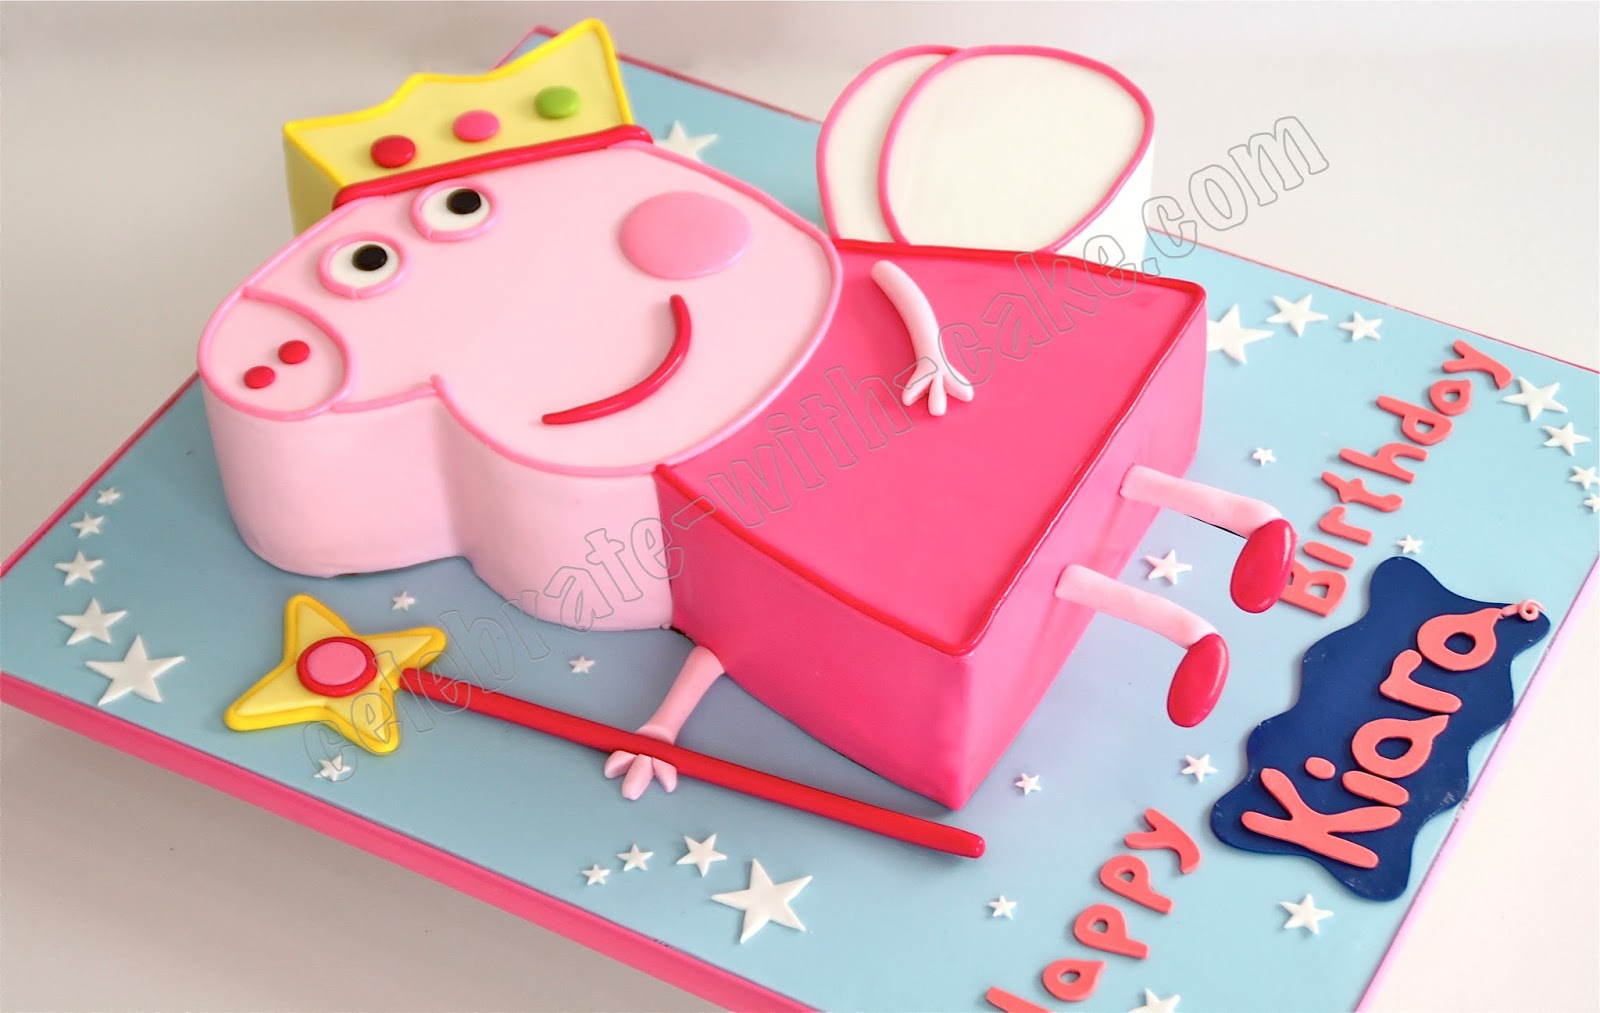 Celebrate with cake fairy princess peppa pig cake for Peppa pig cake template free